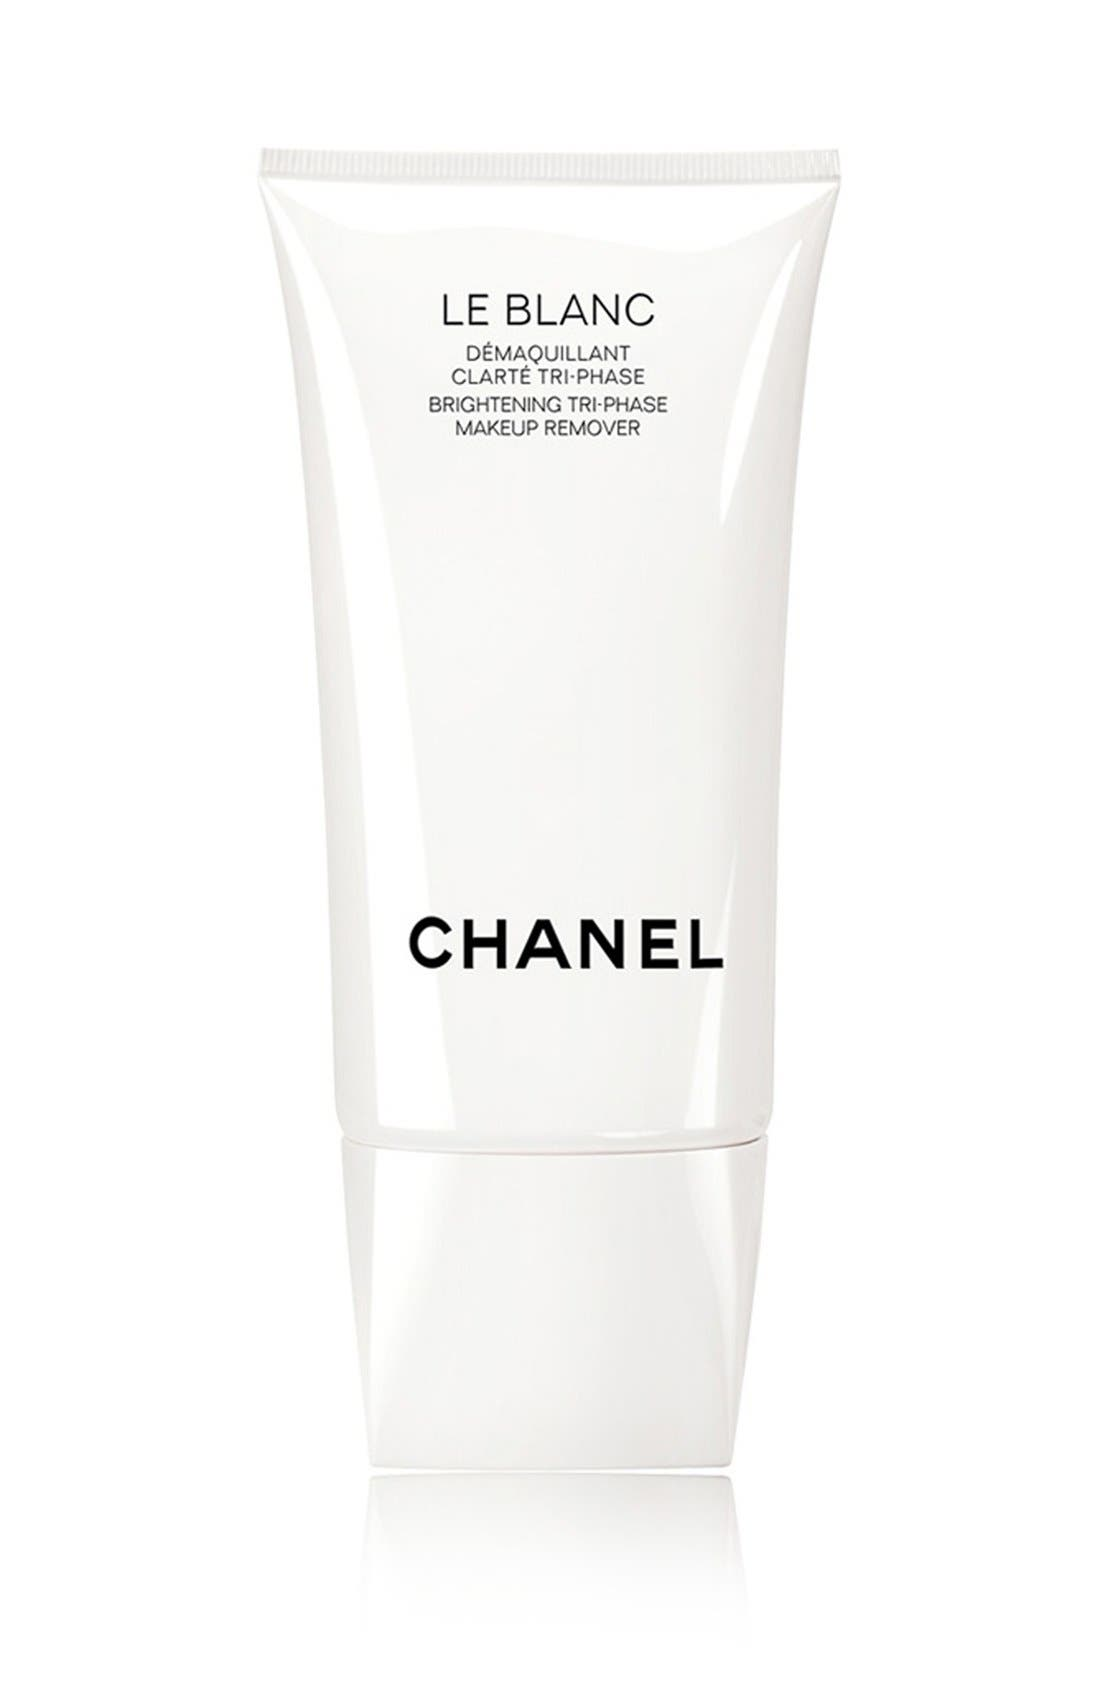 CHANEL LE BLANC  Brightening Tri-Phase Makeup Remover   Nordstrom